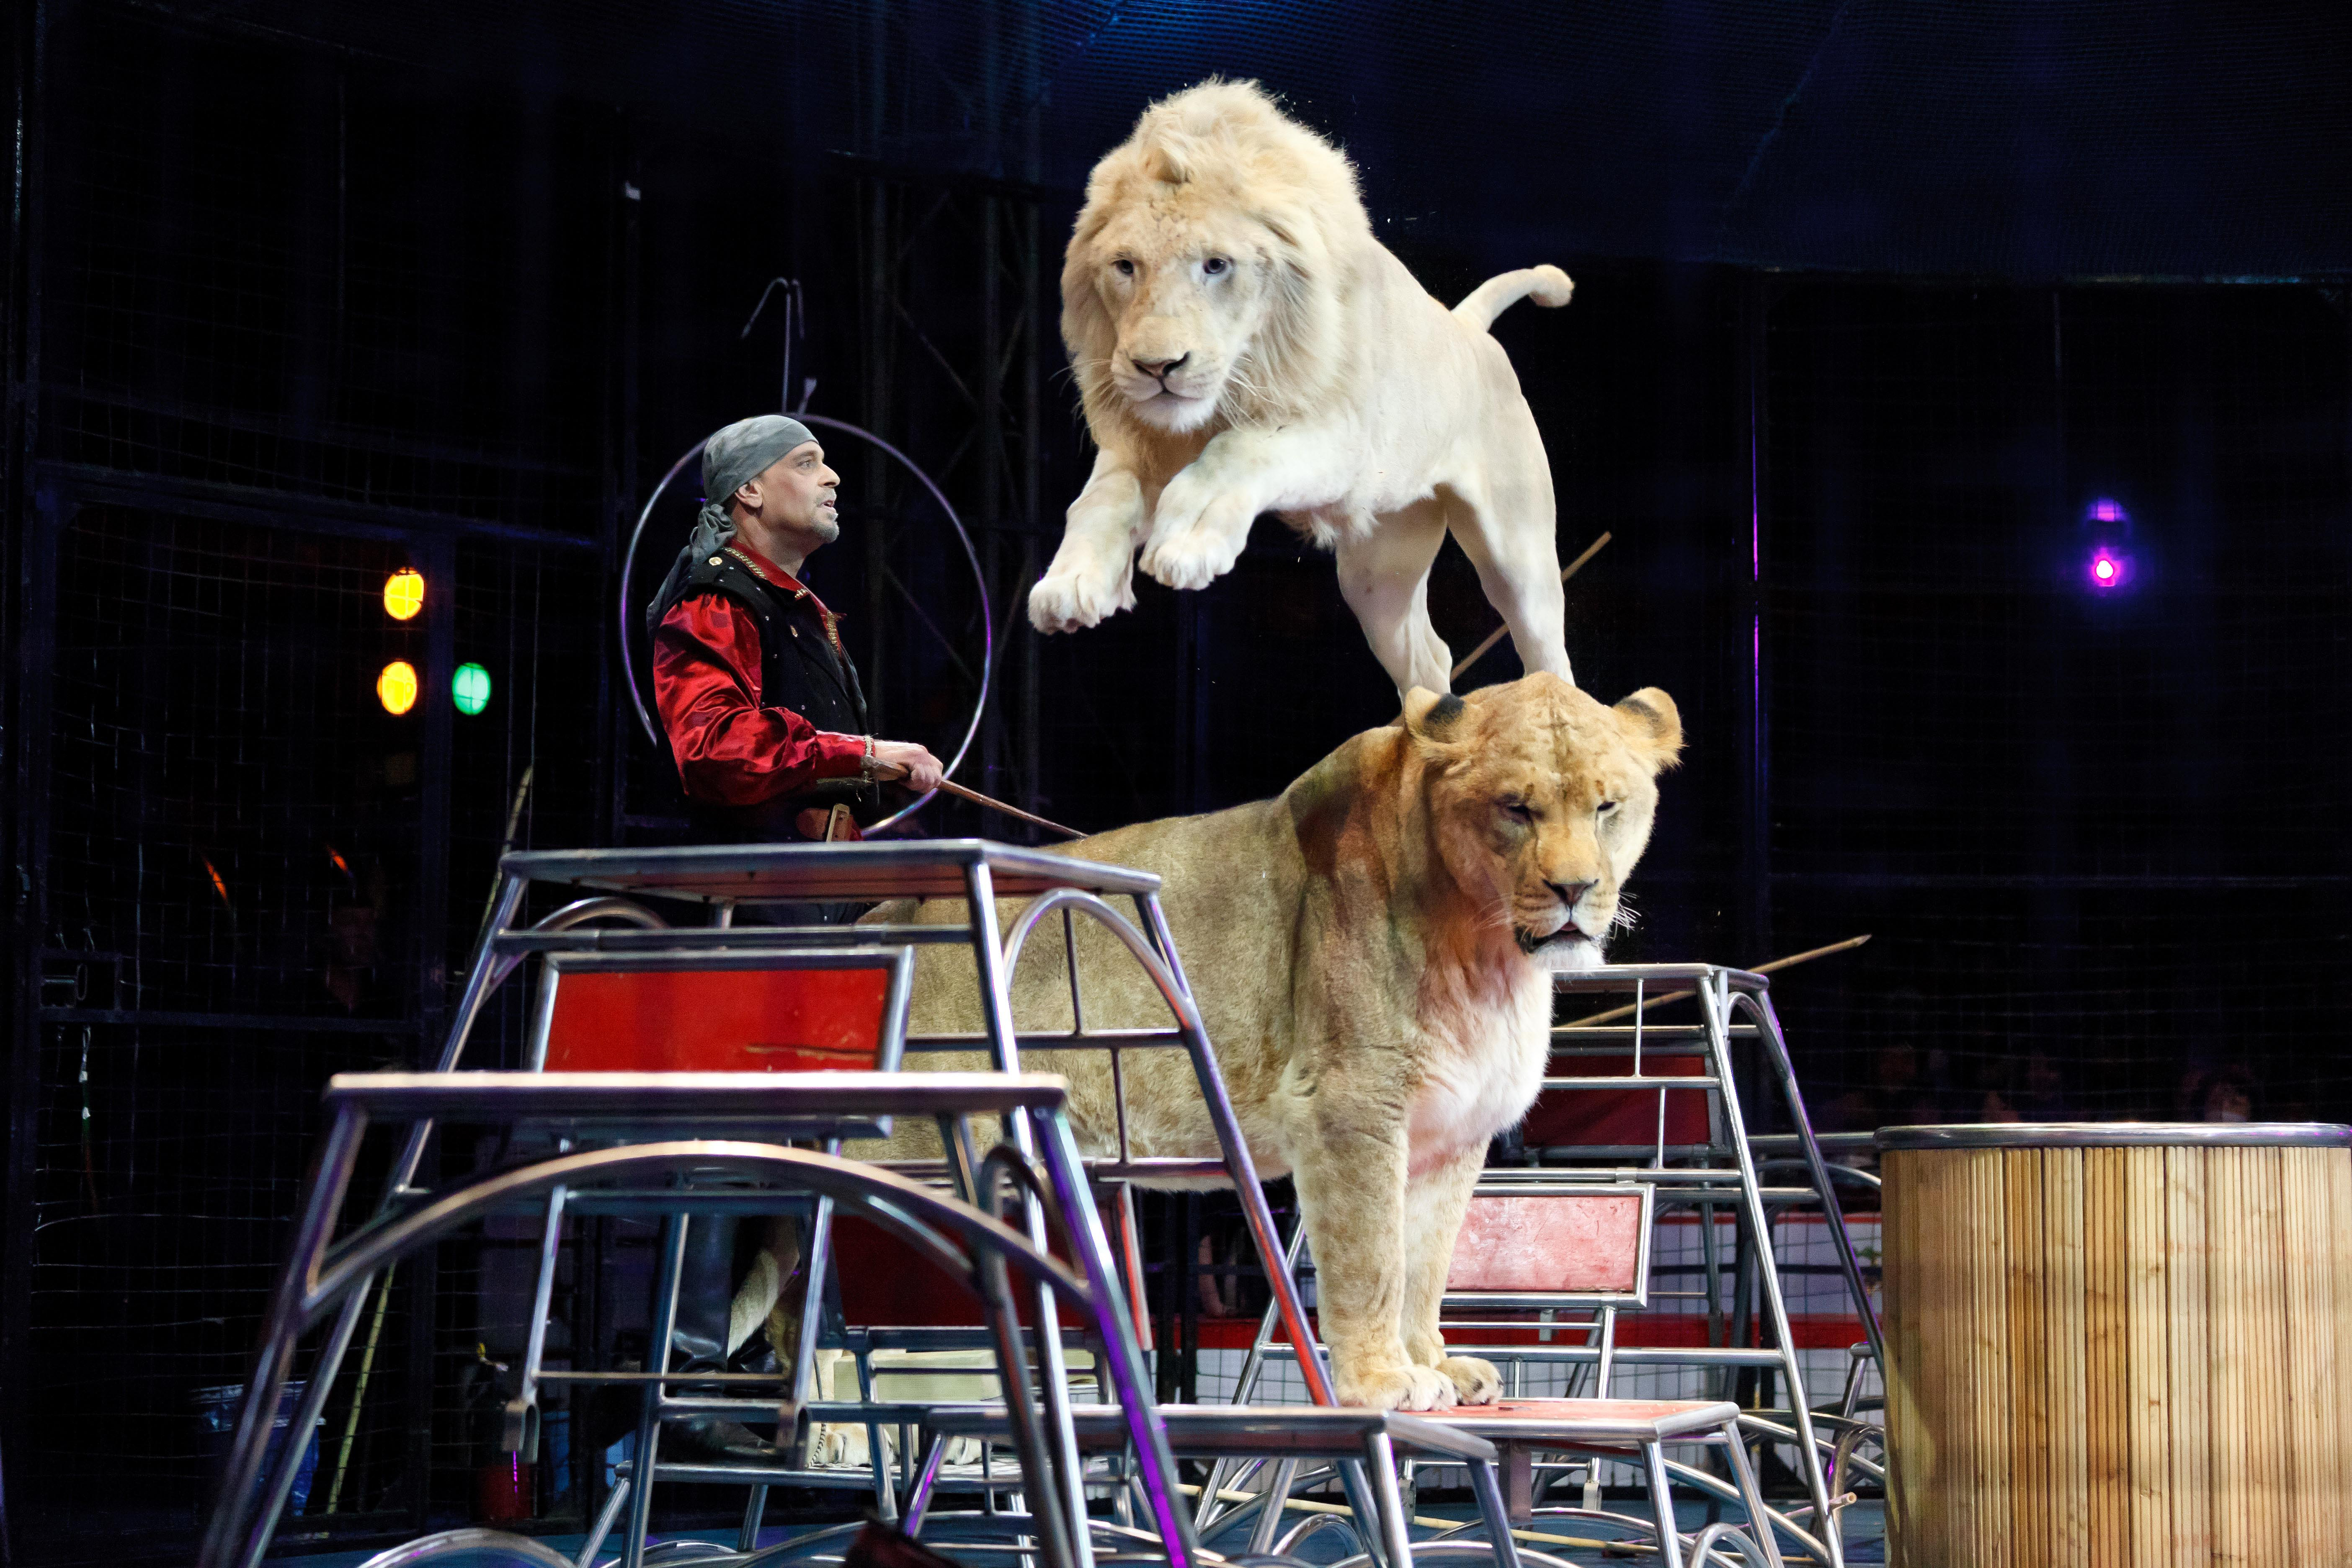 Daring stunts feature at circus